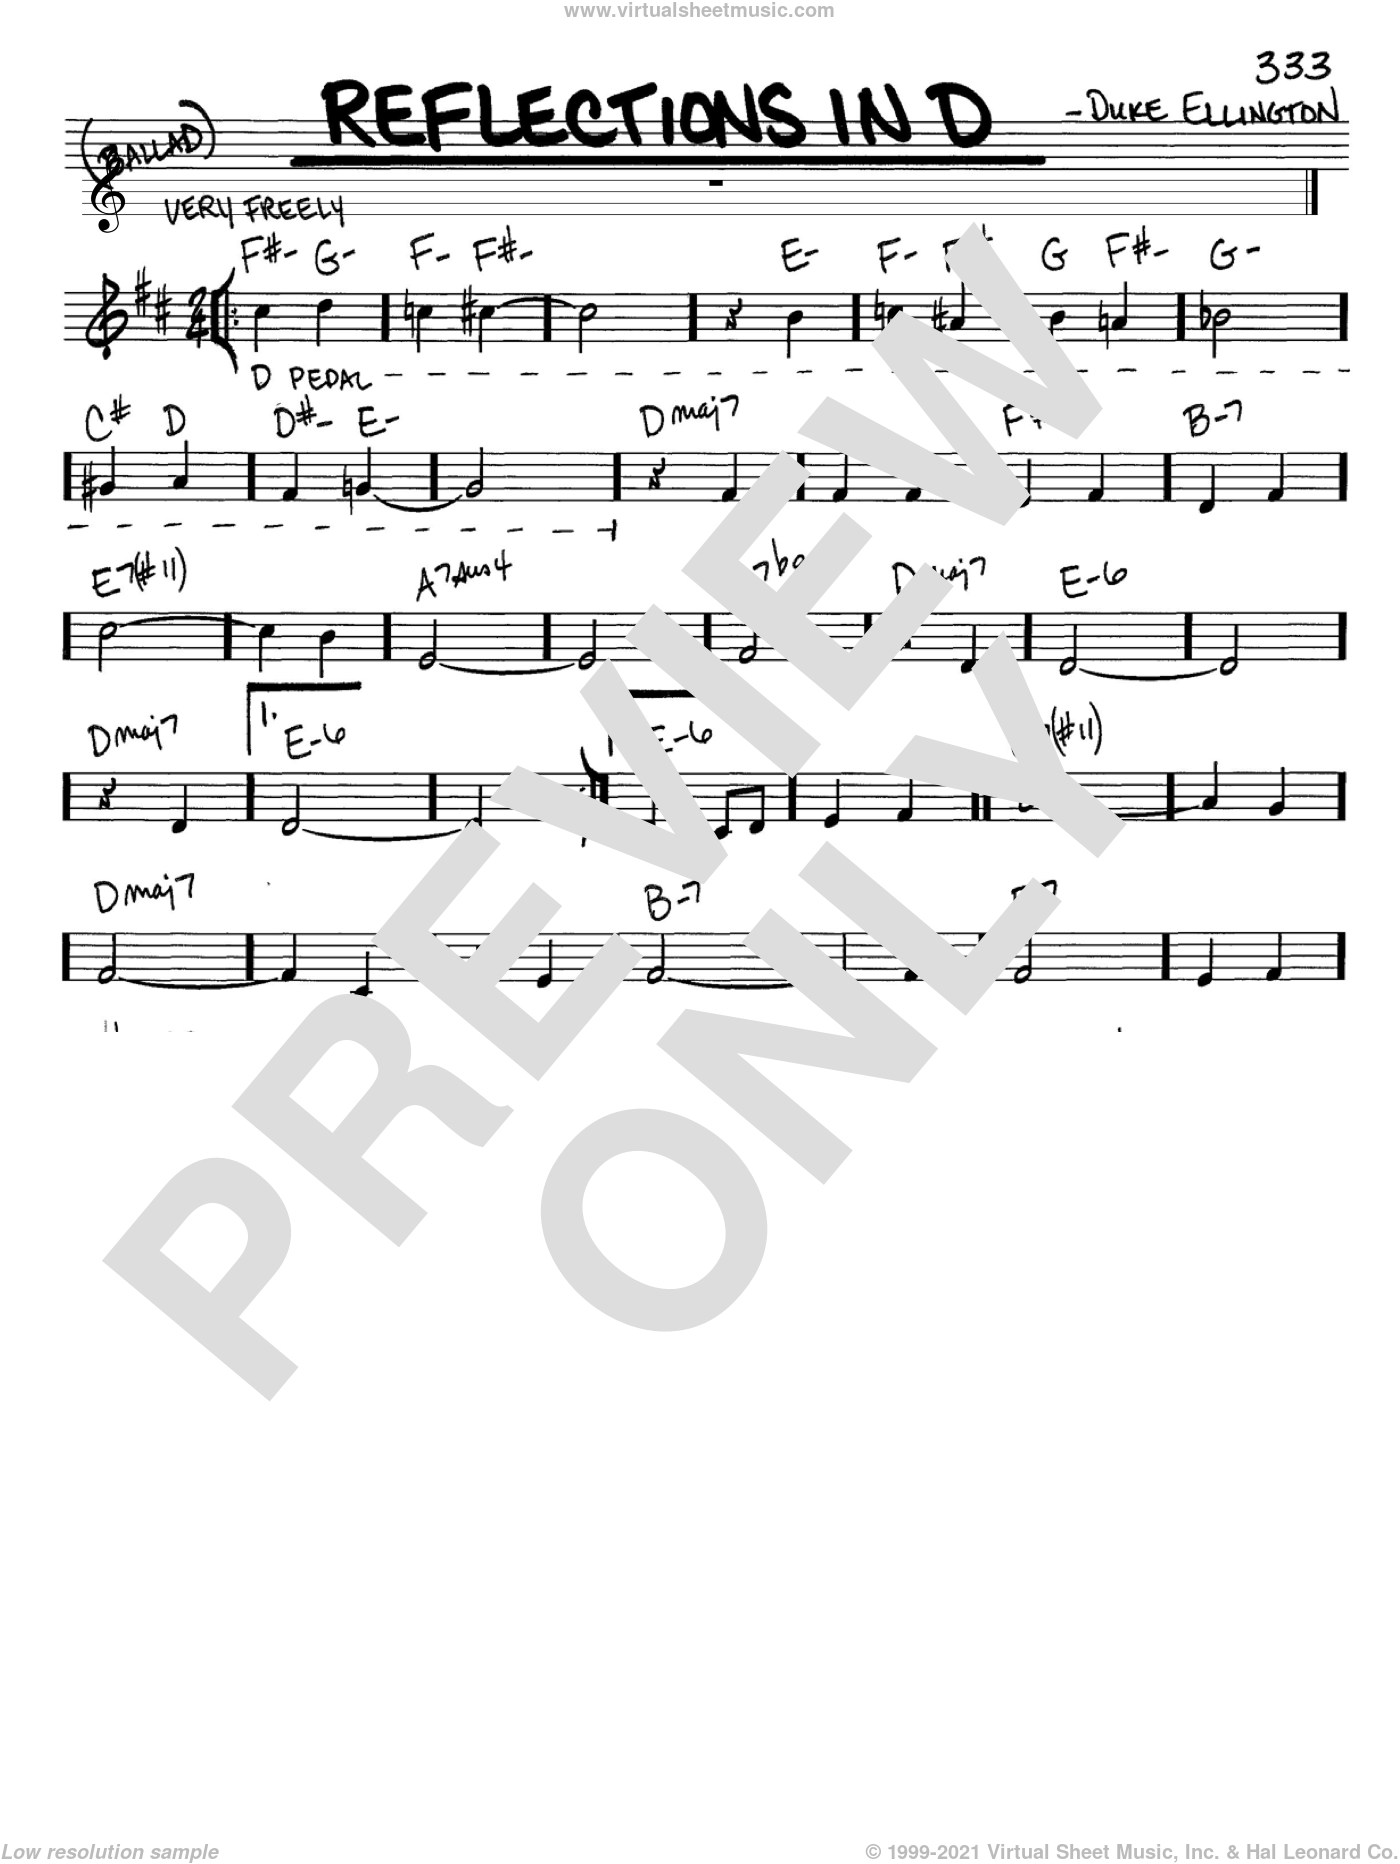 Reflections In D sheet music for voice and other instruments (C) by Duke Ellington. Score Image Preview.